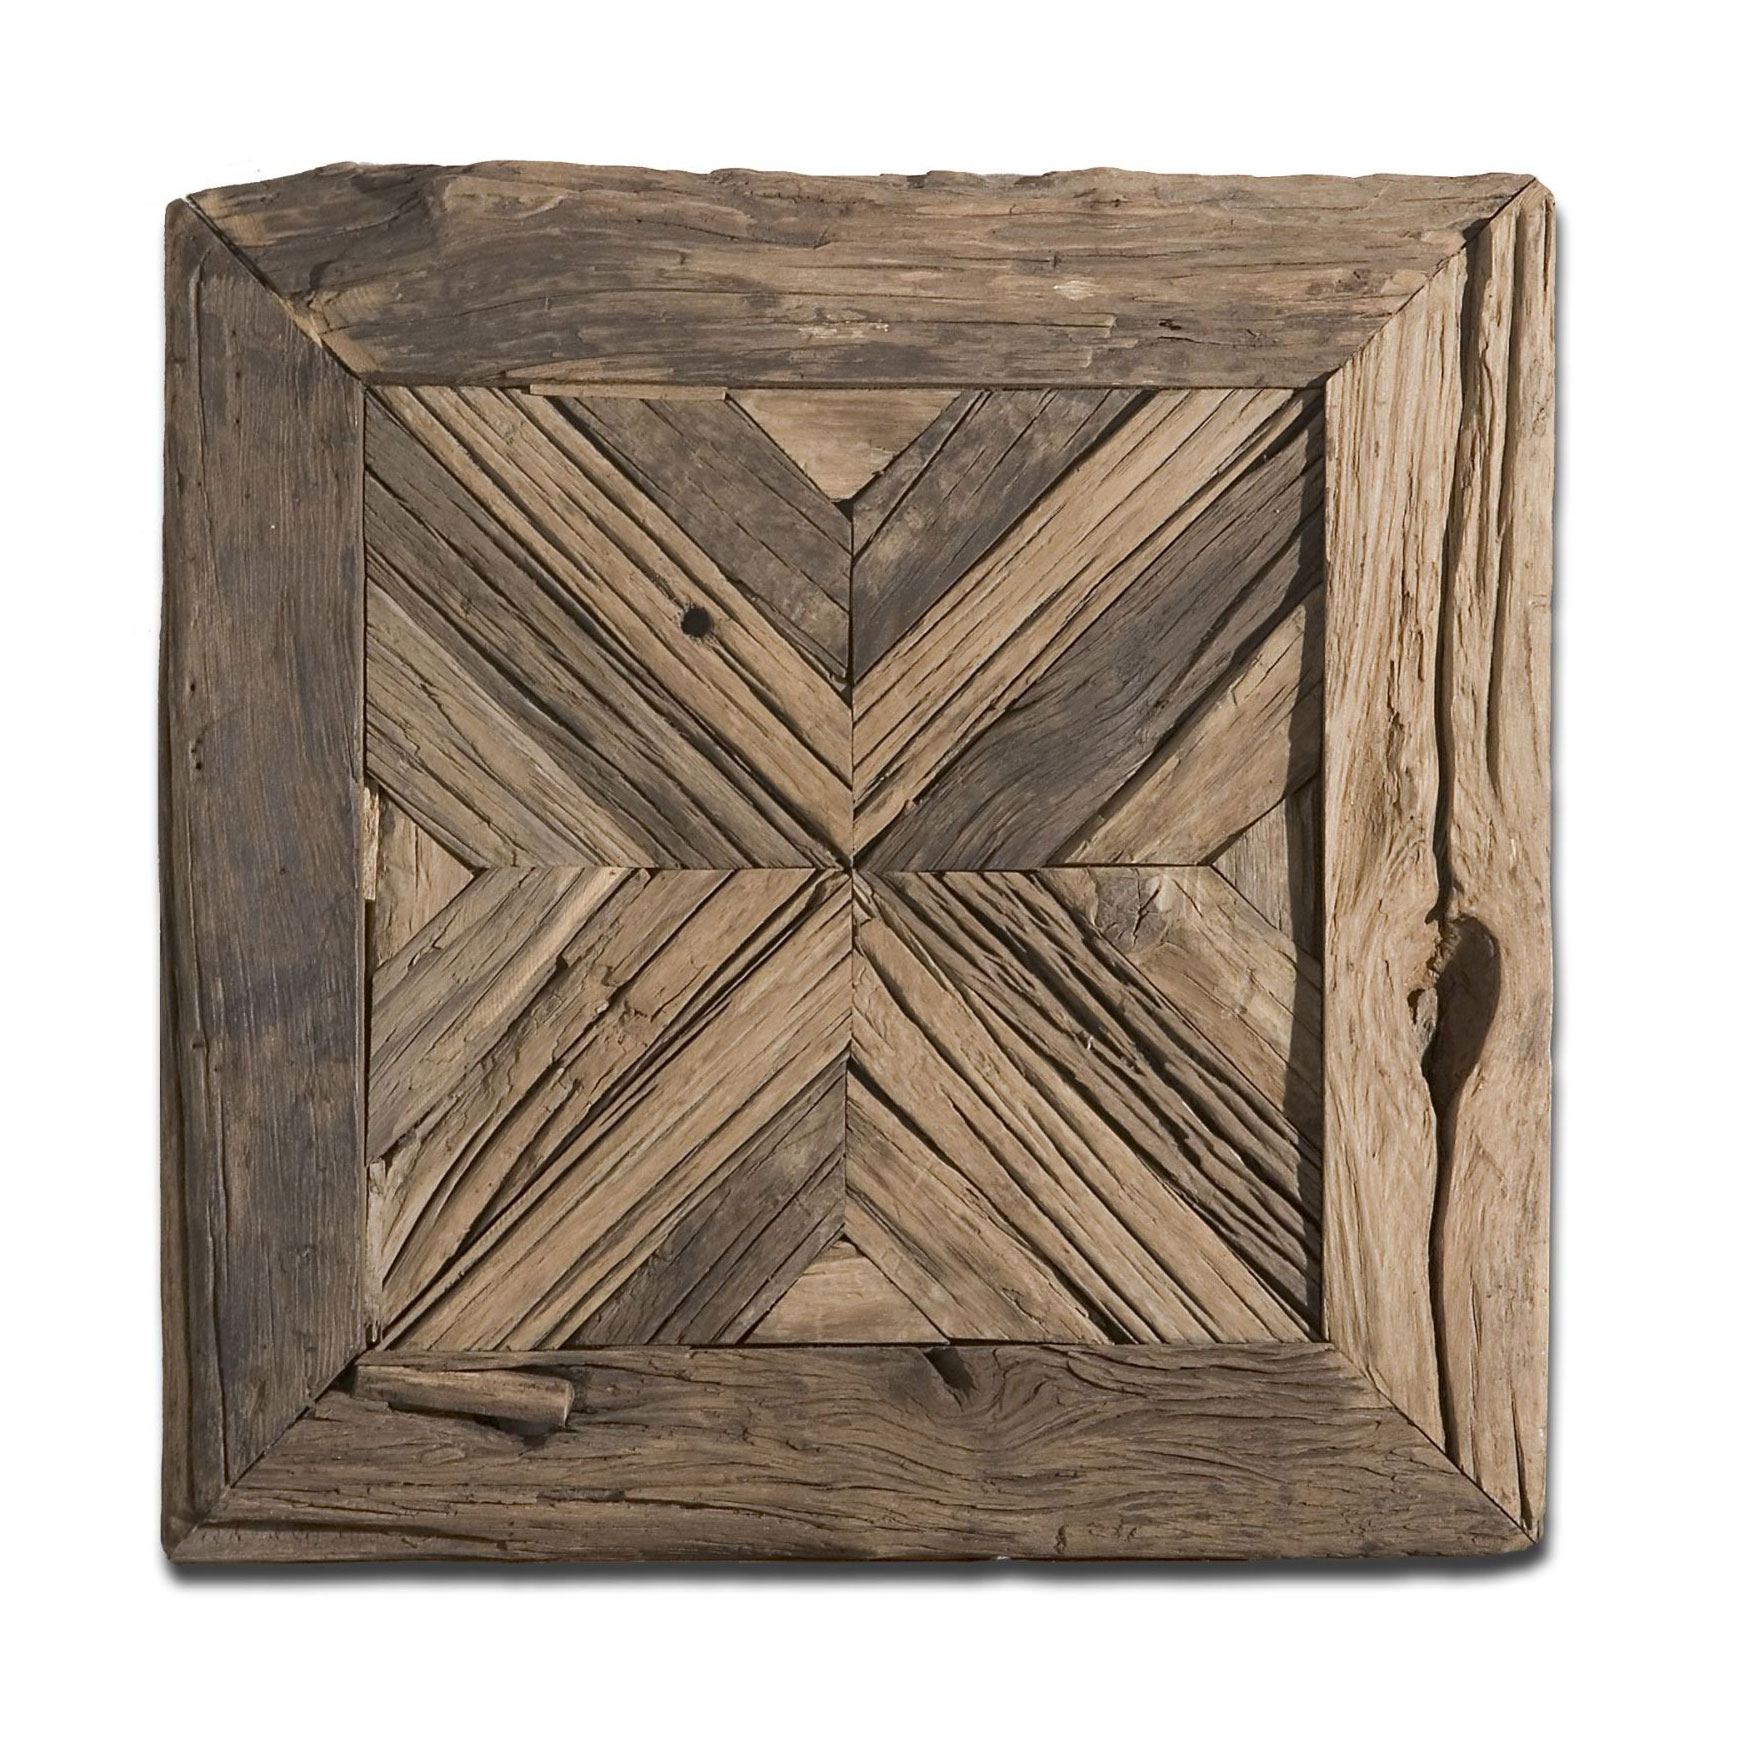 Rennick Reclaimed Wood Wall Art, WOOD